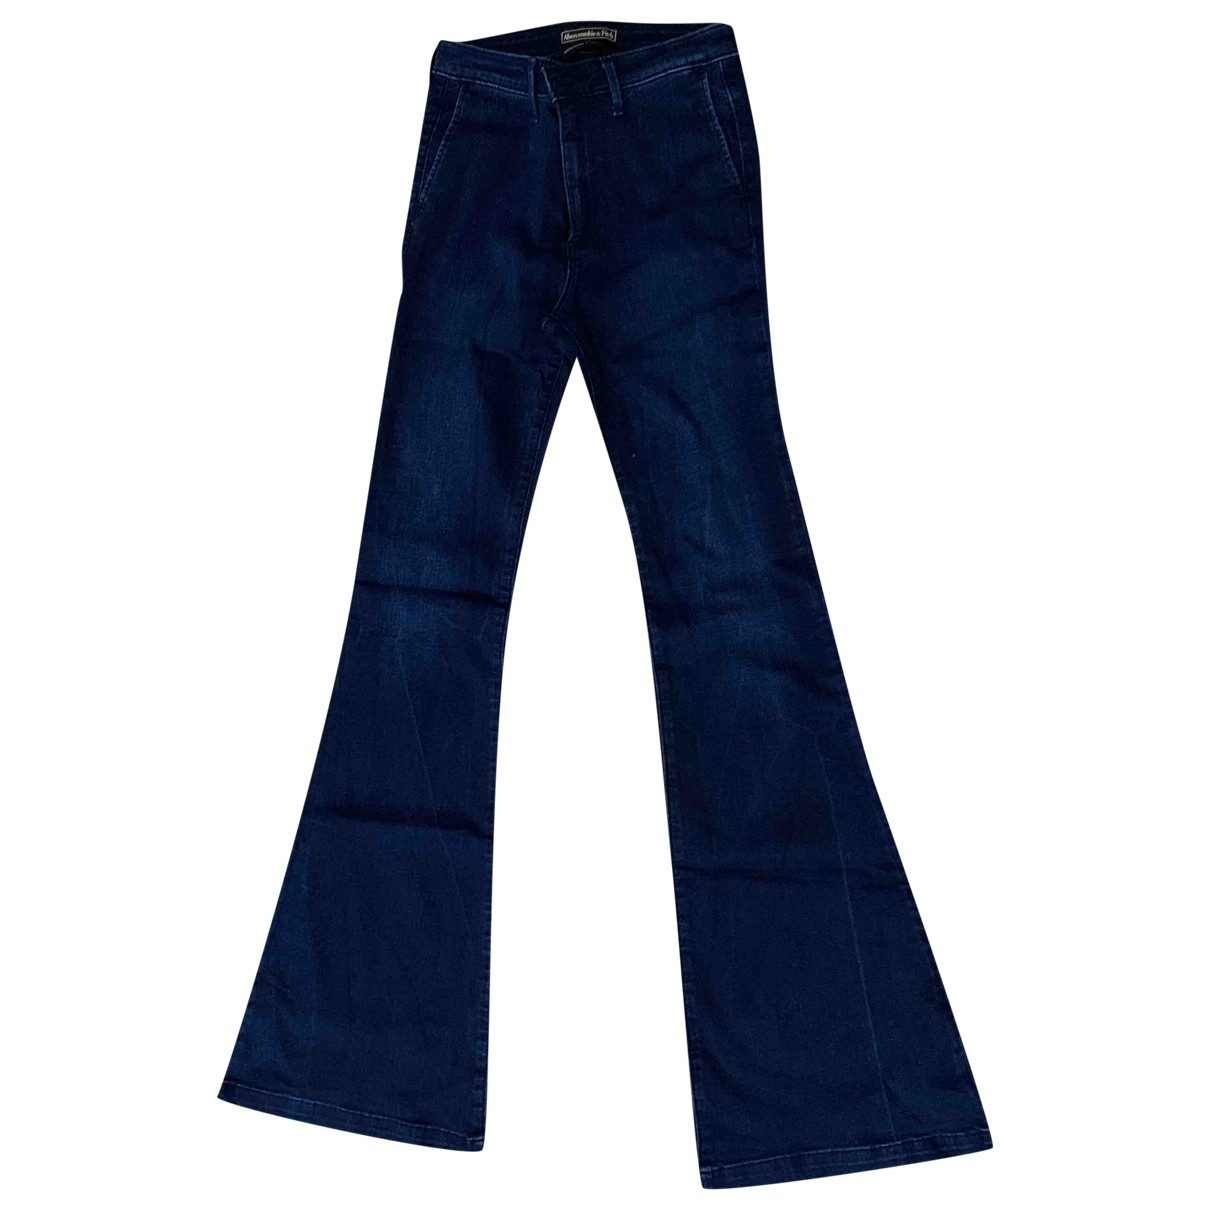 Abercrombie & Fitch \N Navy Denim - Jeans Jeans for Women 24 US